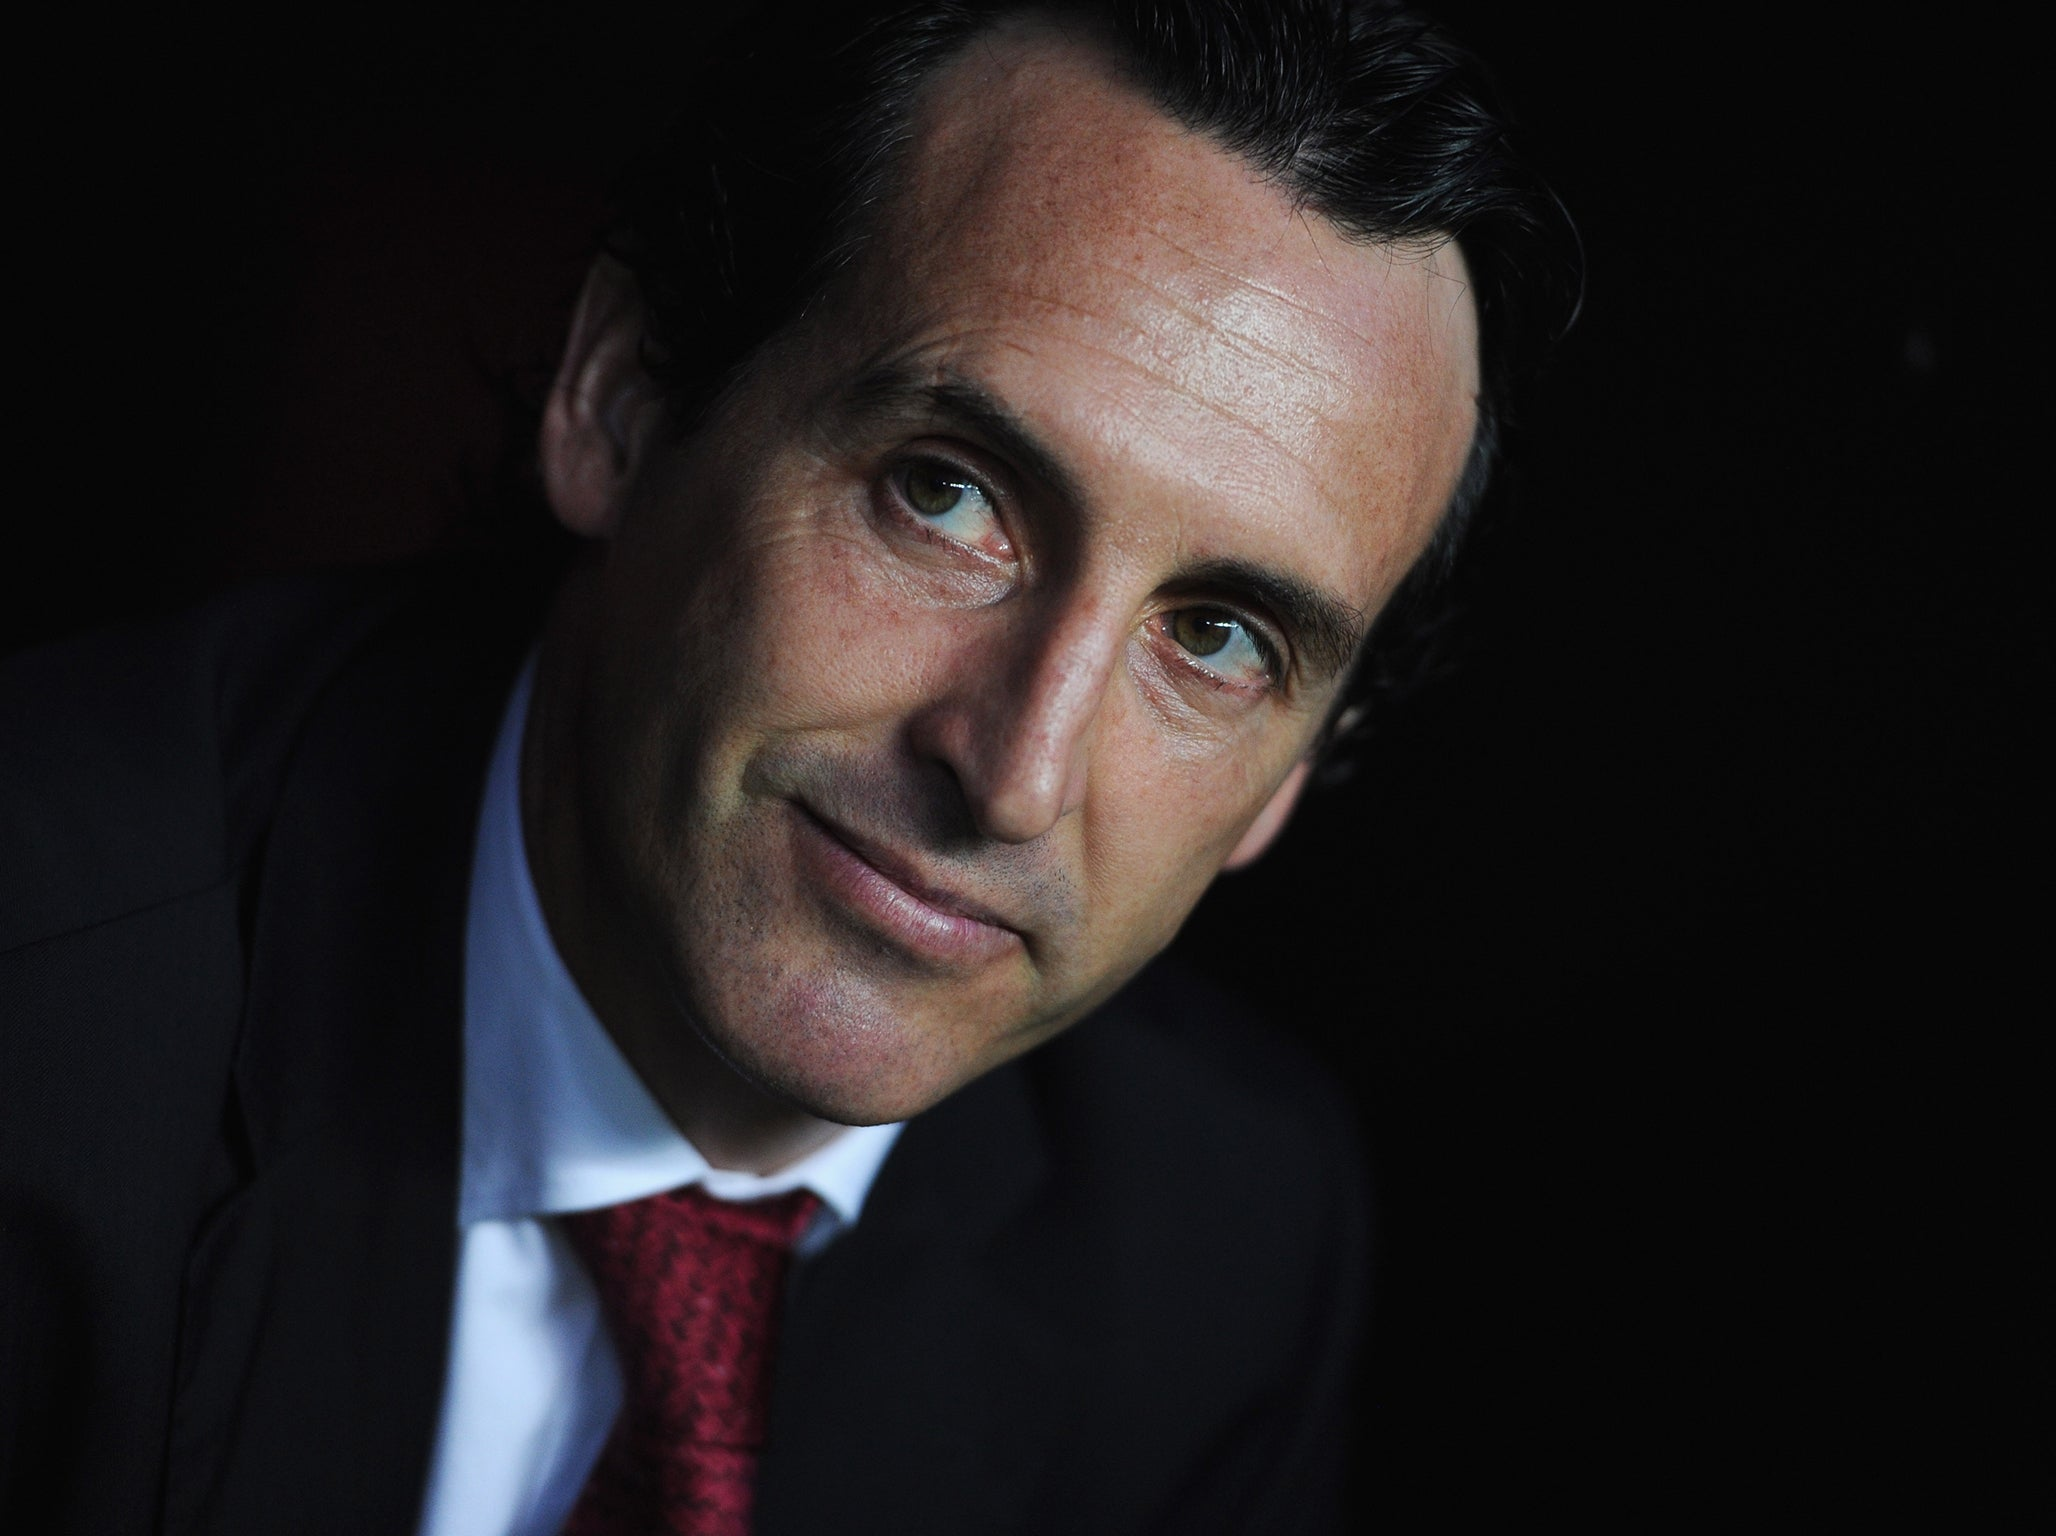 Arsenal new manager Unai Emery: How should Liverpool, Manchester United and Tottenham fans react to appointment?